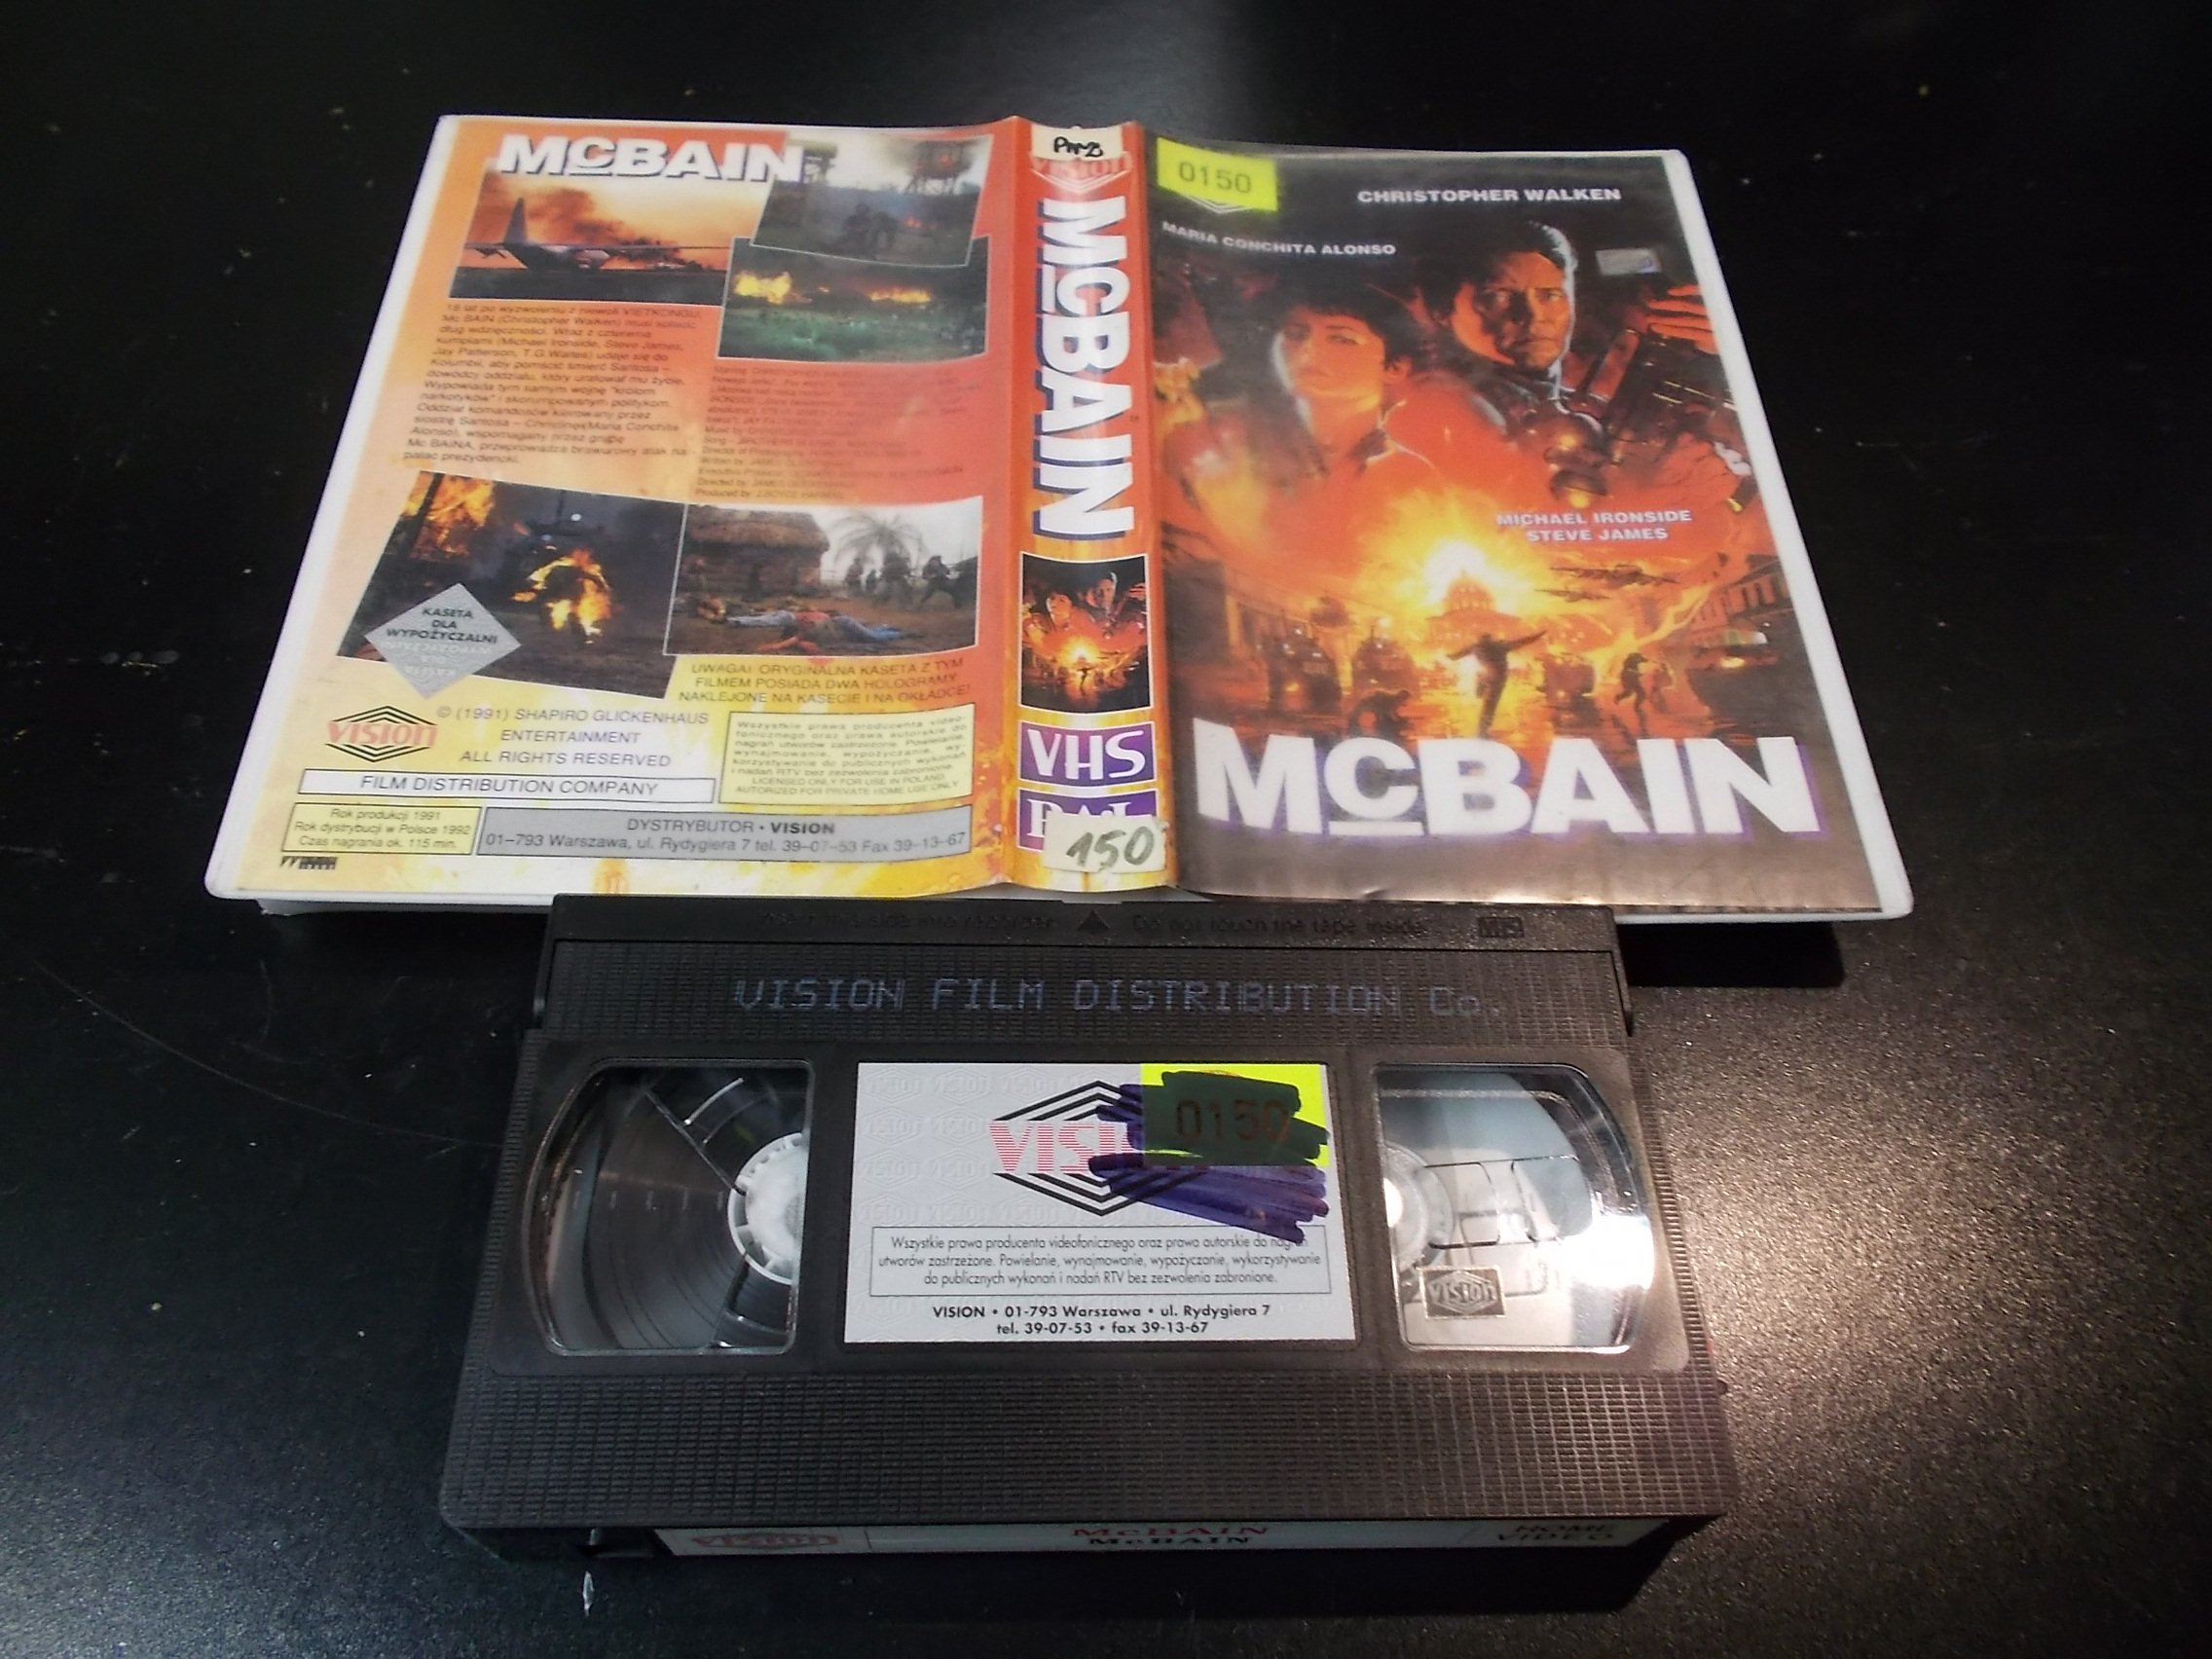 MCBAIN - kaseta Video VHS - 1410 Sklep